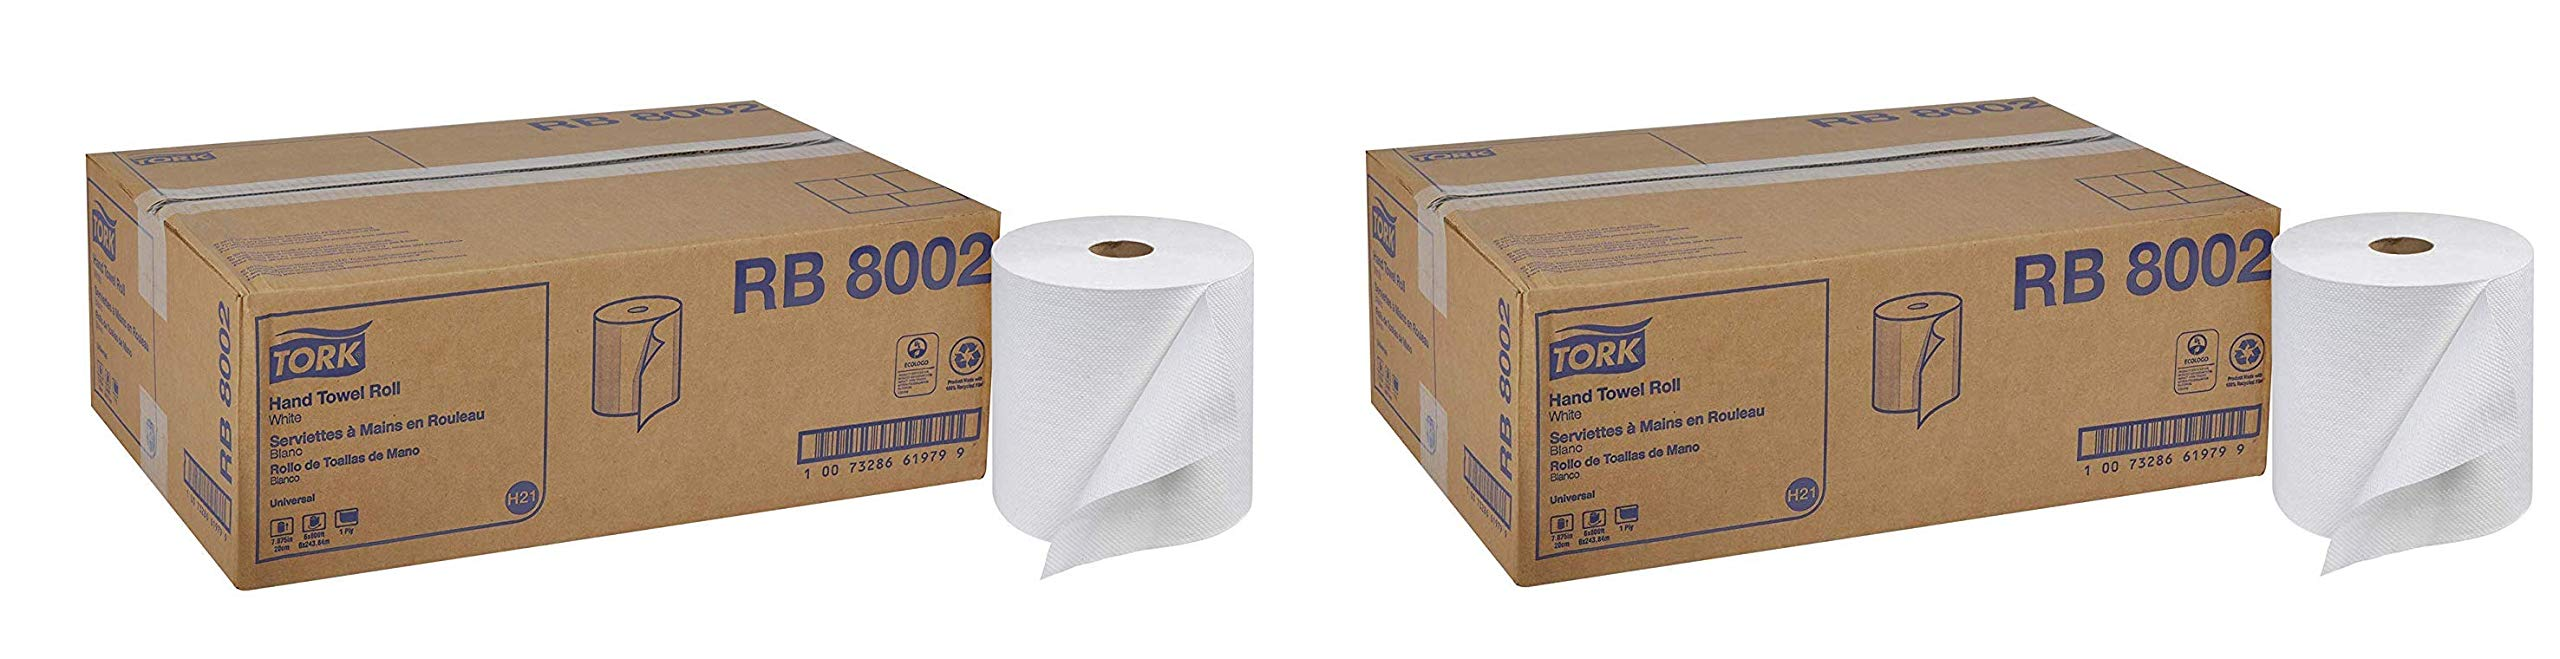 Tork Universal RB8002 Hardwound Paper Roll Towel, 1-Ply, 7.87'' Width x 800' Length, White (Case of 6 Rolls, 800 per Roll, 4,800 Feet) (Тwo Рack)